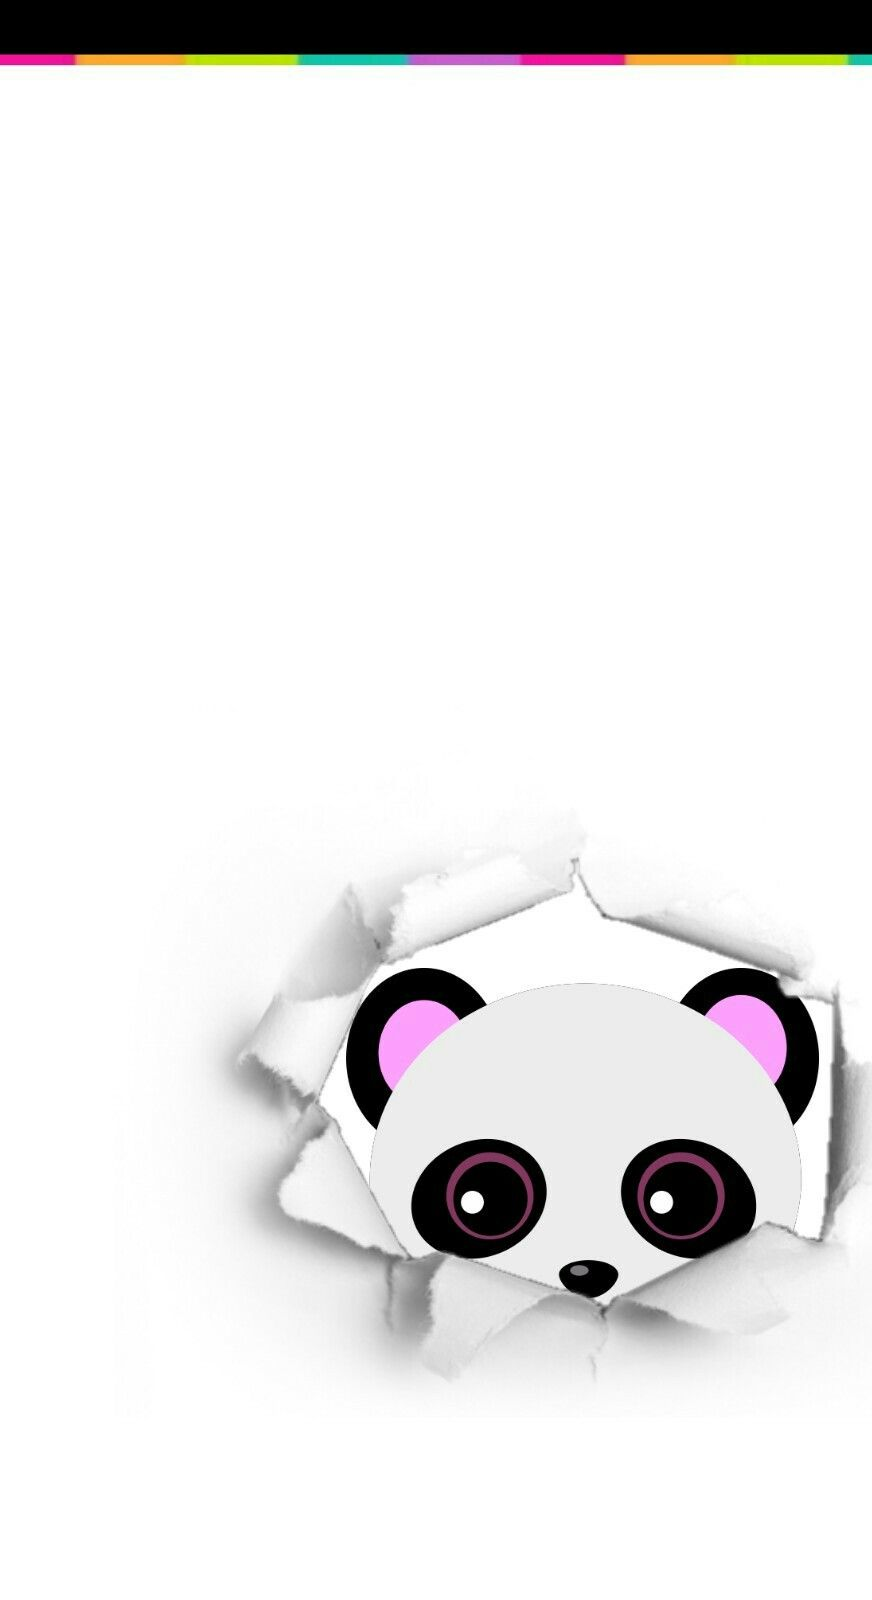 Pin By Annie On A Panda Wallpapers Cute Wallpapers Locked Wallpaper